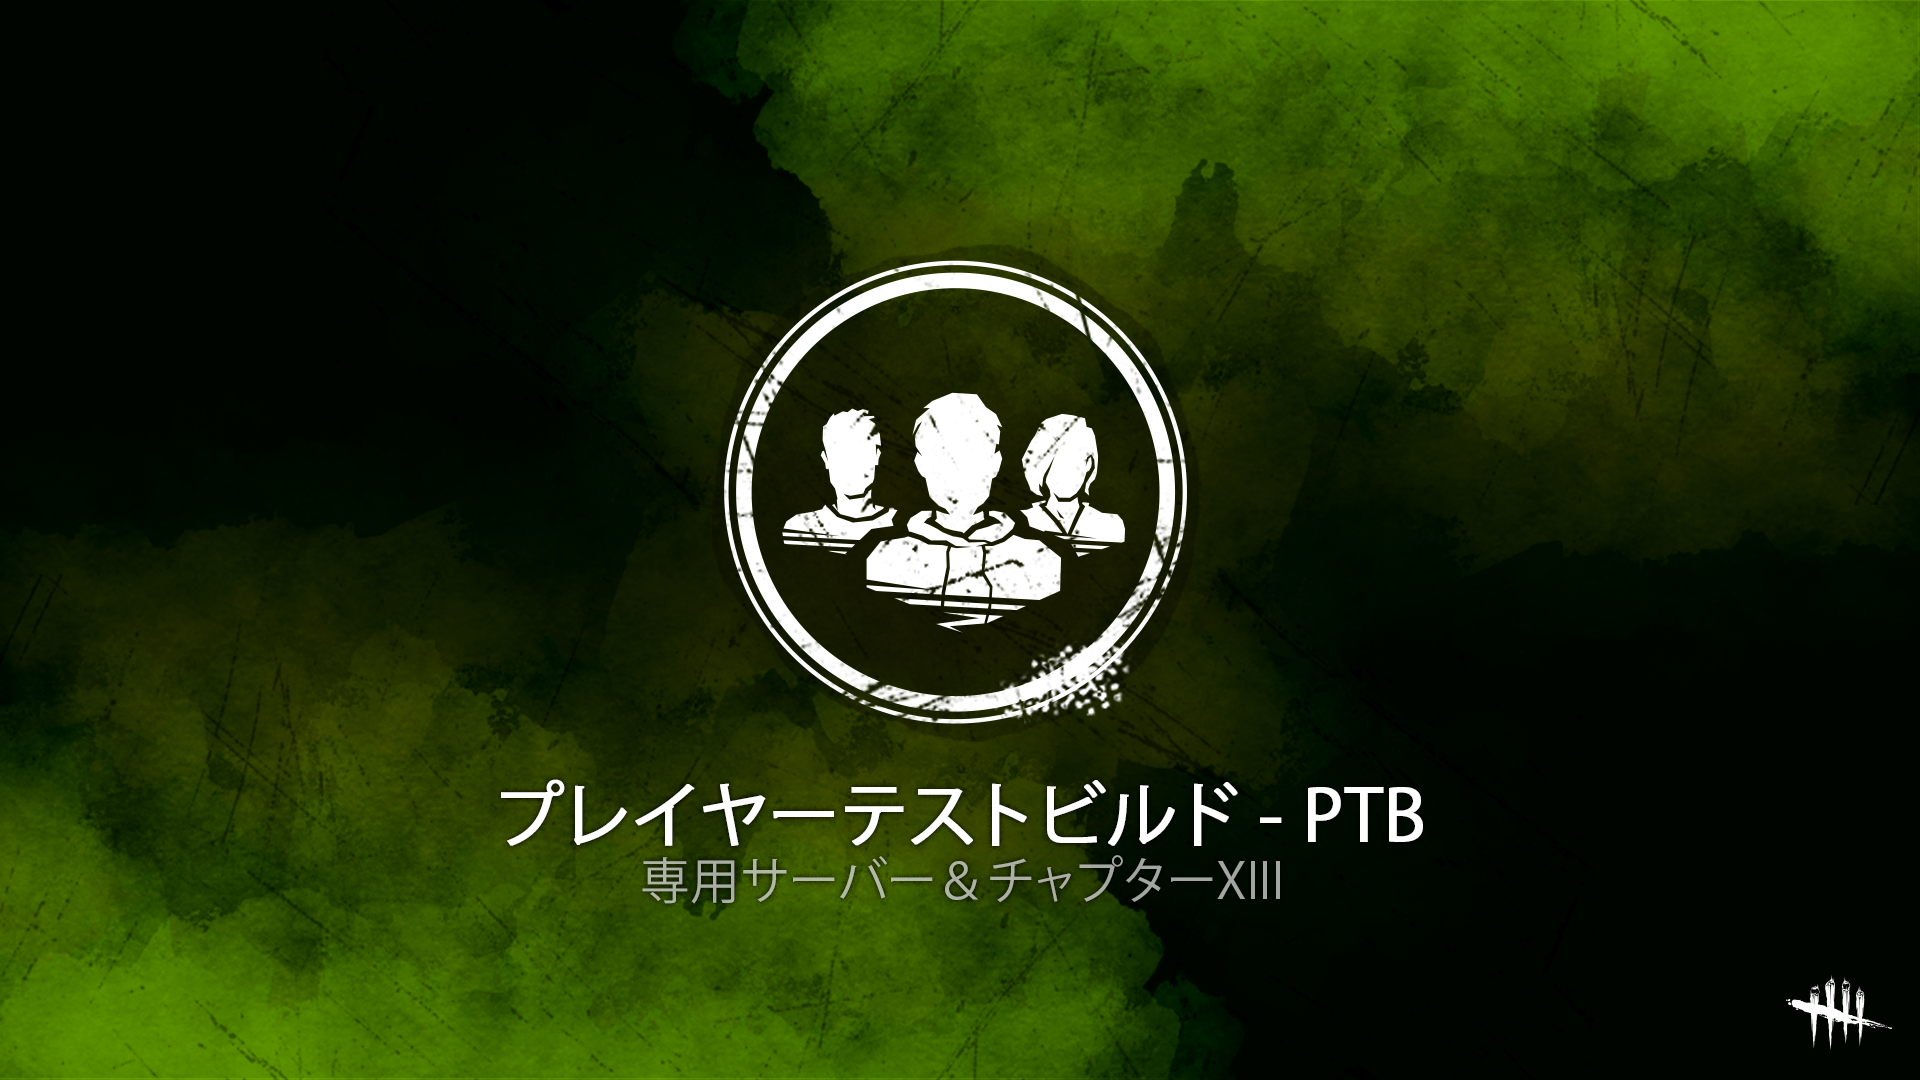 DBD_Comm_Template_1920x1080_PTB.png